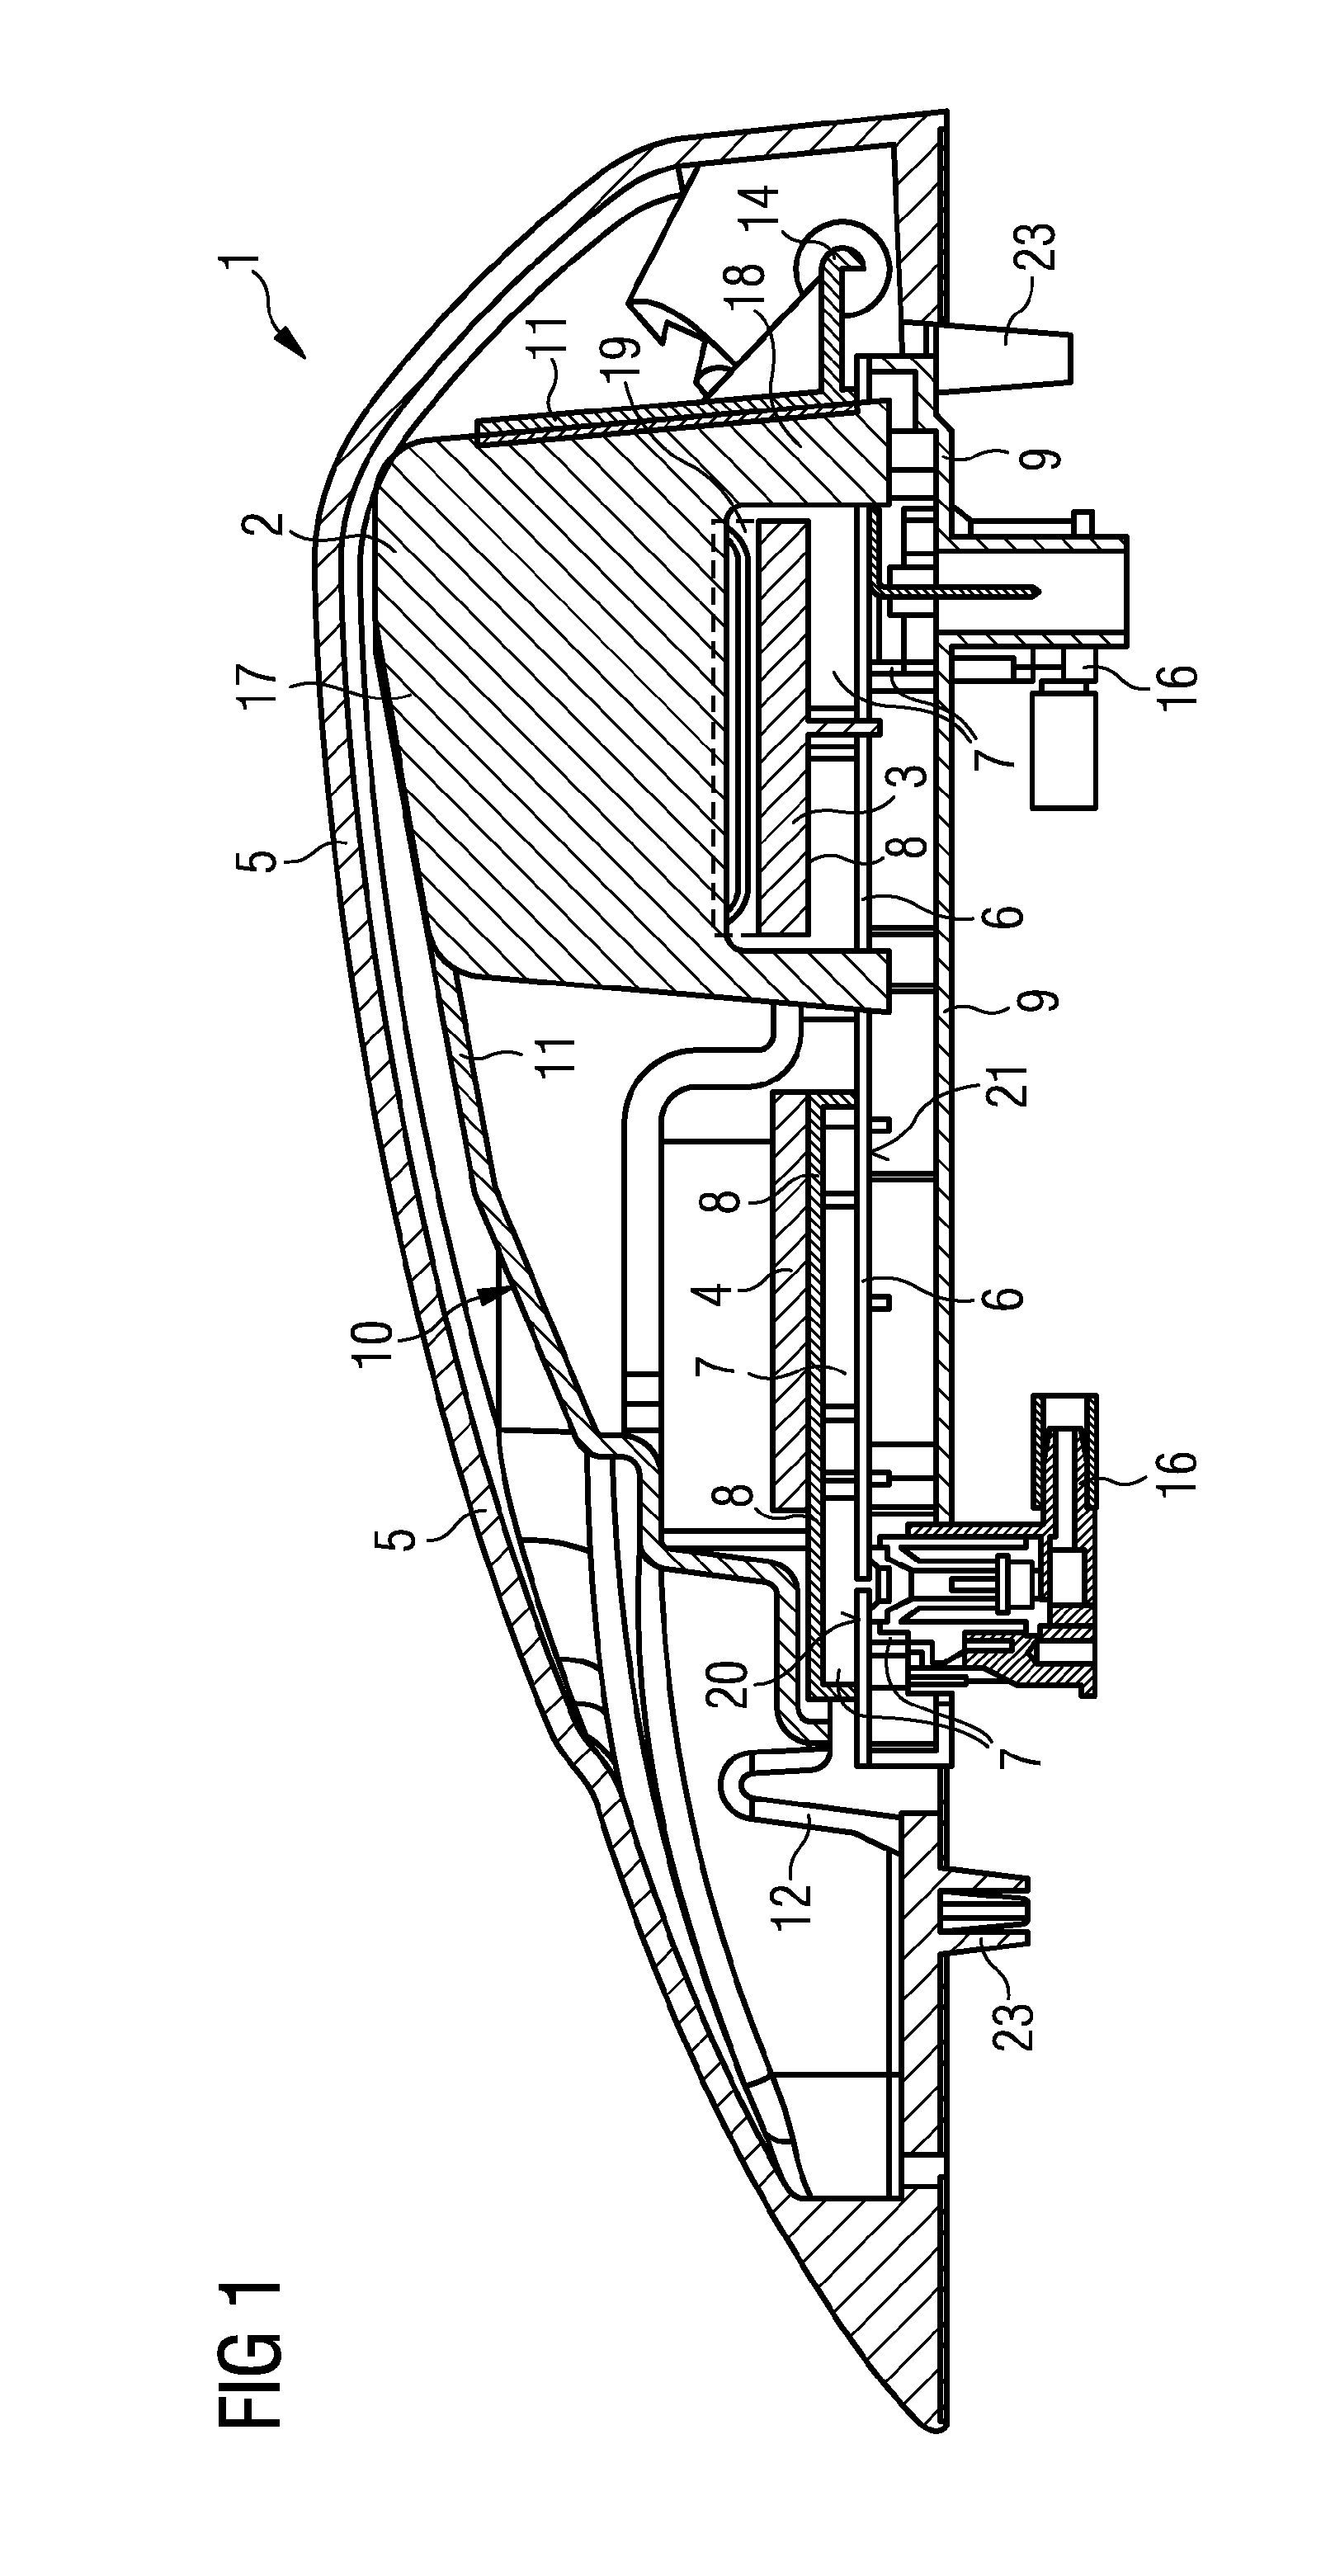 patent us20120274519 - highly integrated multiband shark fin antenna for a vehicle